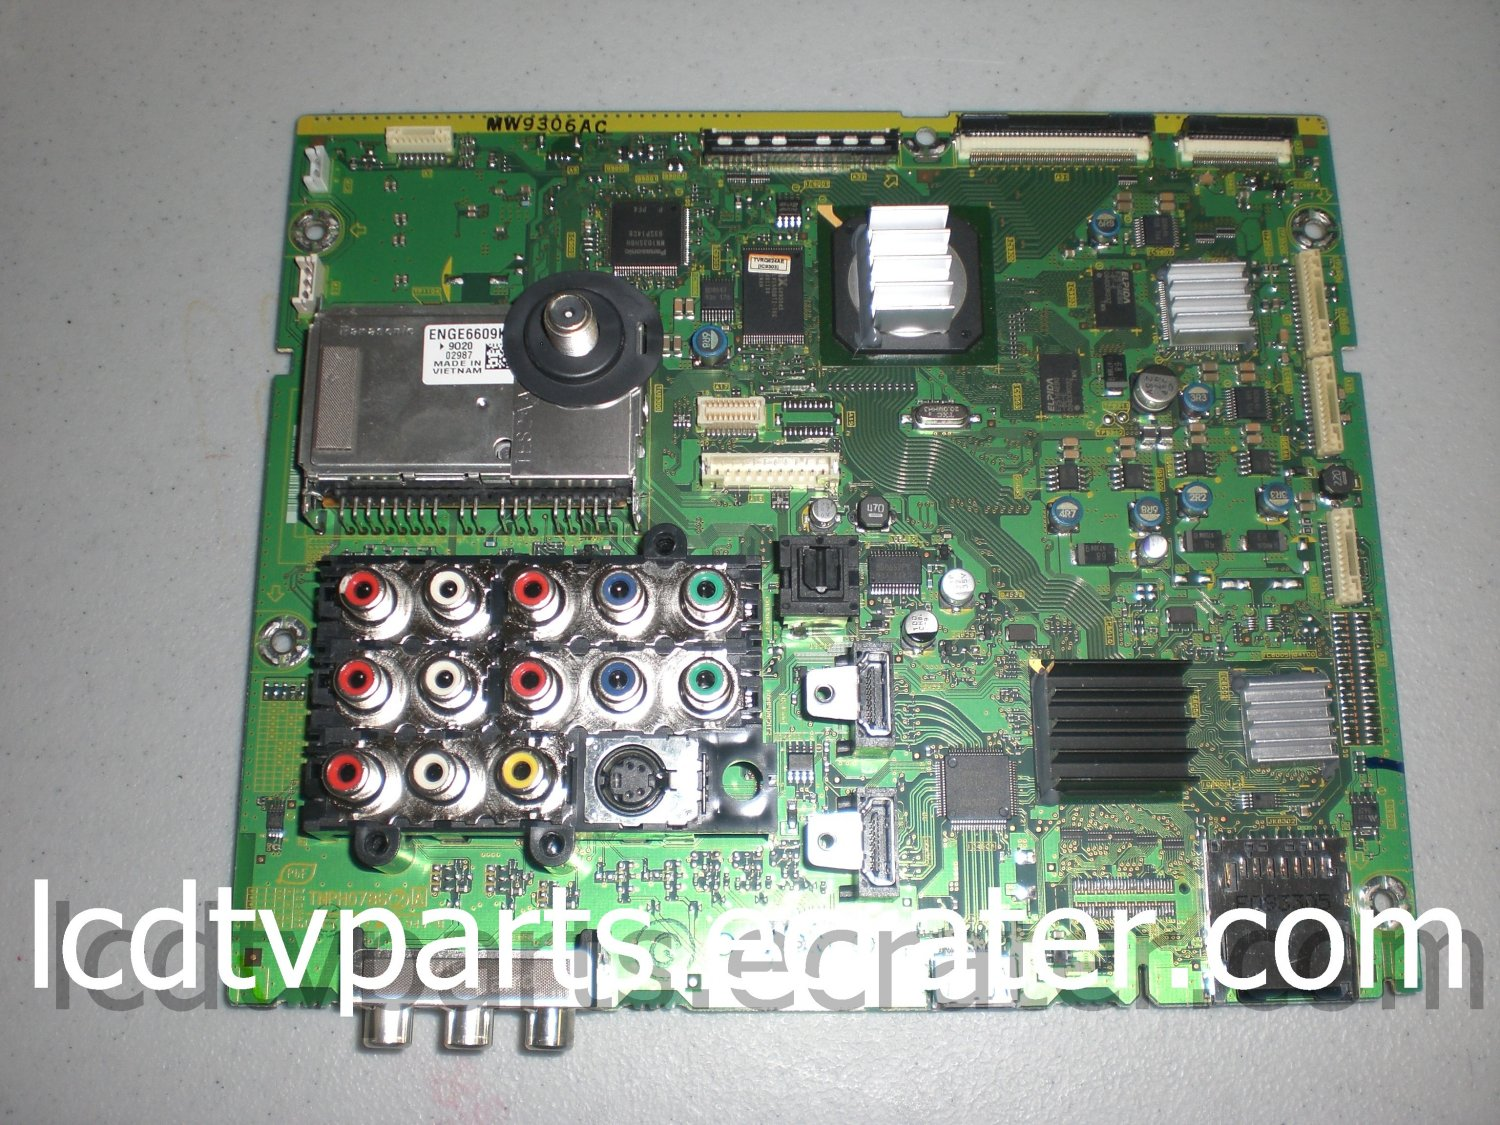 TXN/A1EDUUS, TNPH0786, MW9306AC, Main Board for PANASONIC TC-P50S1